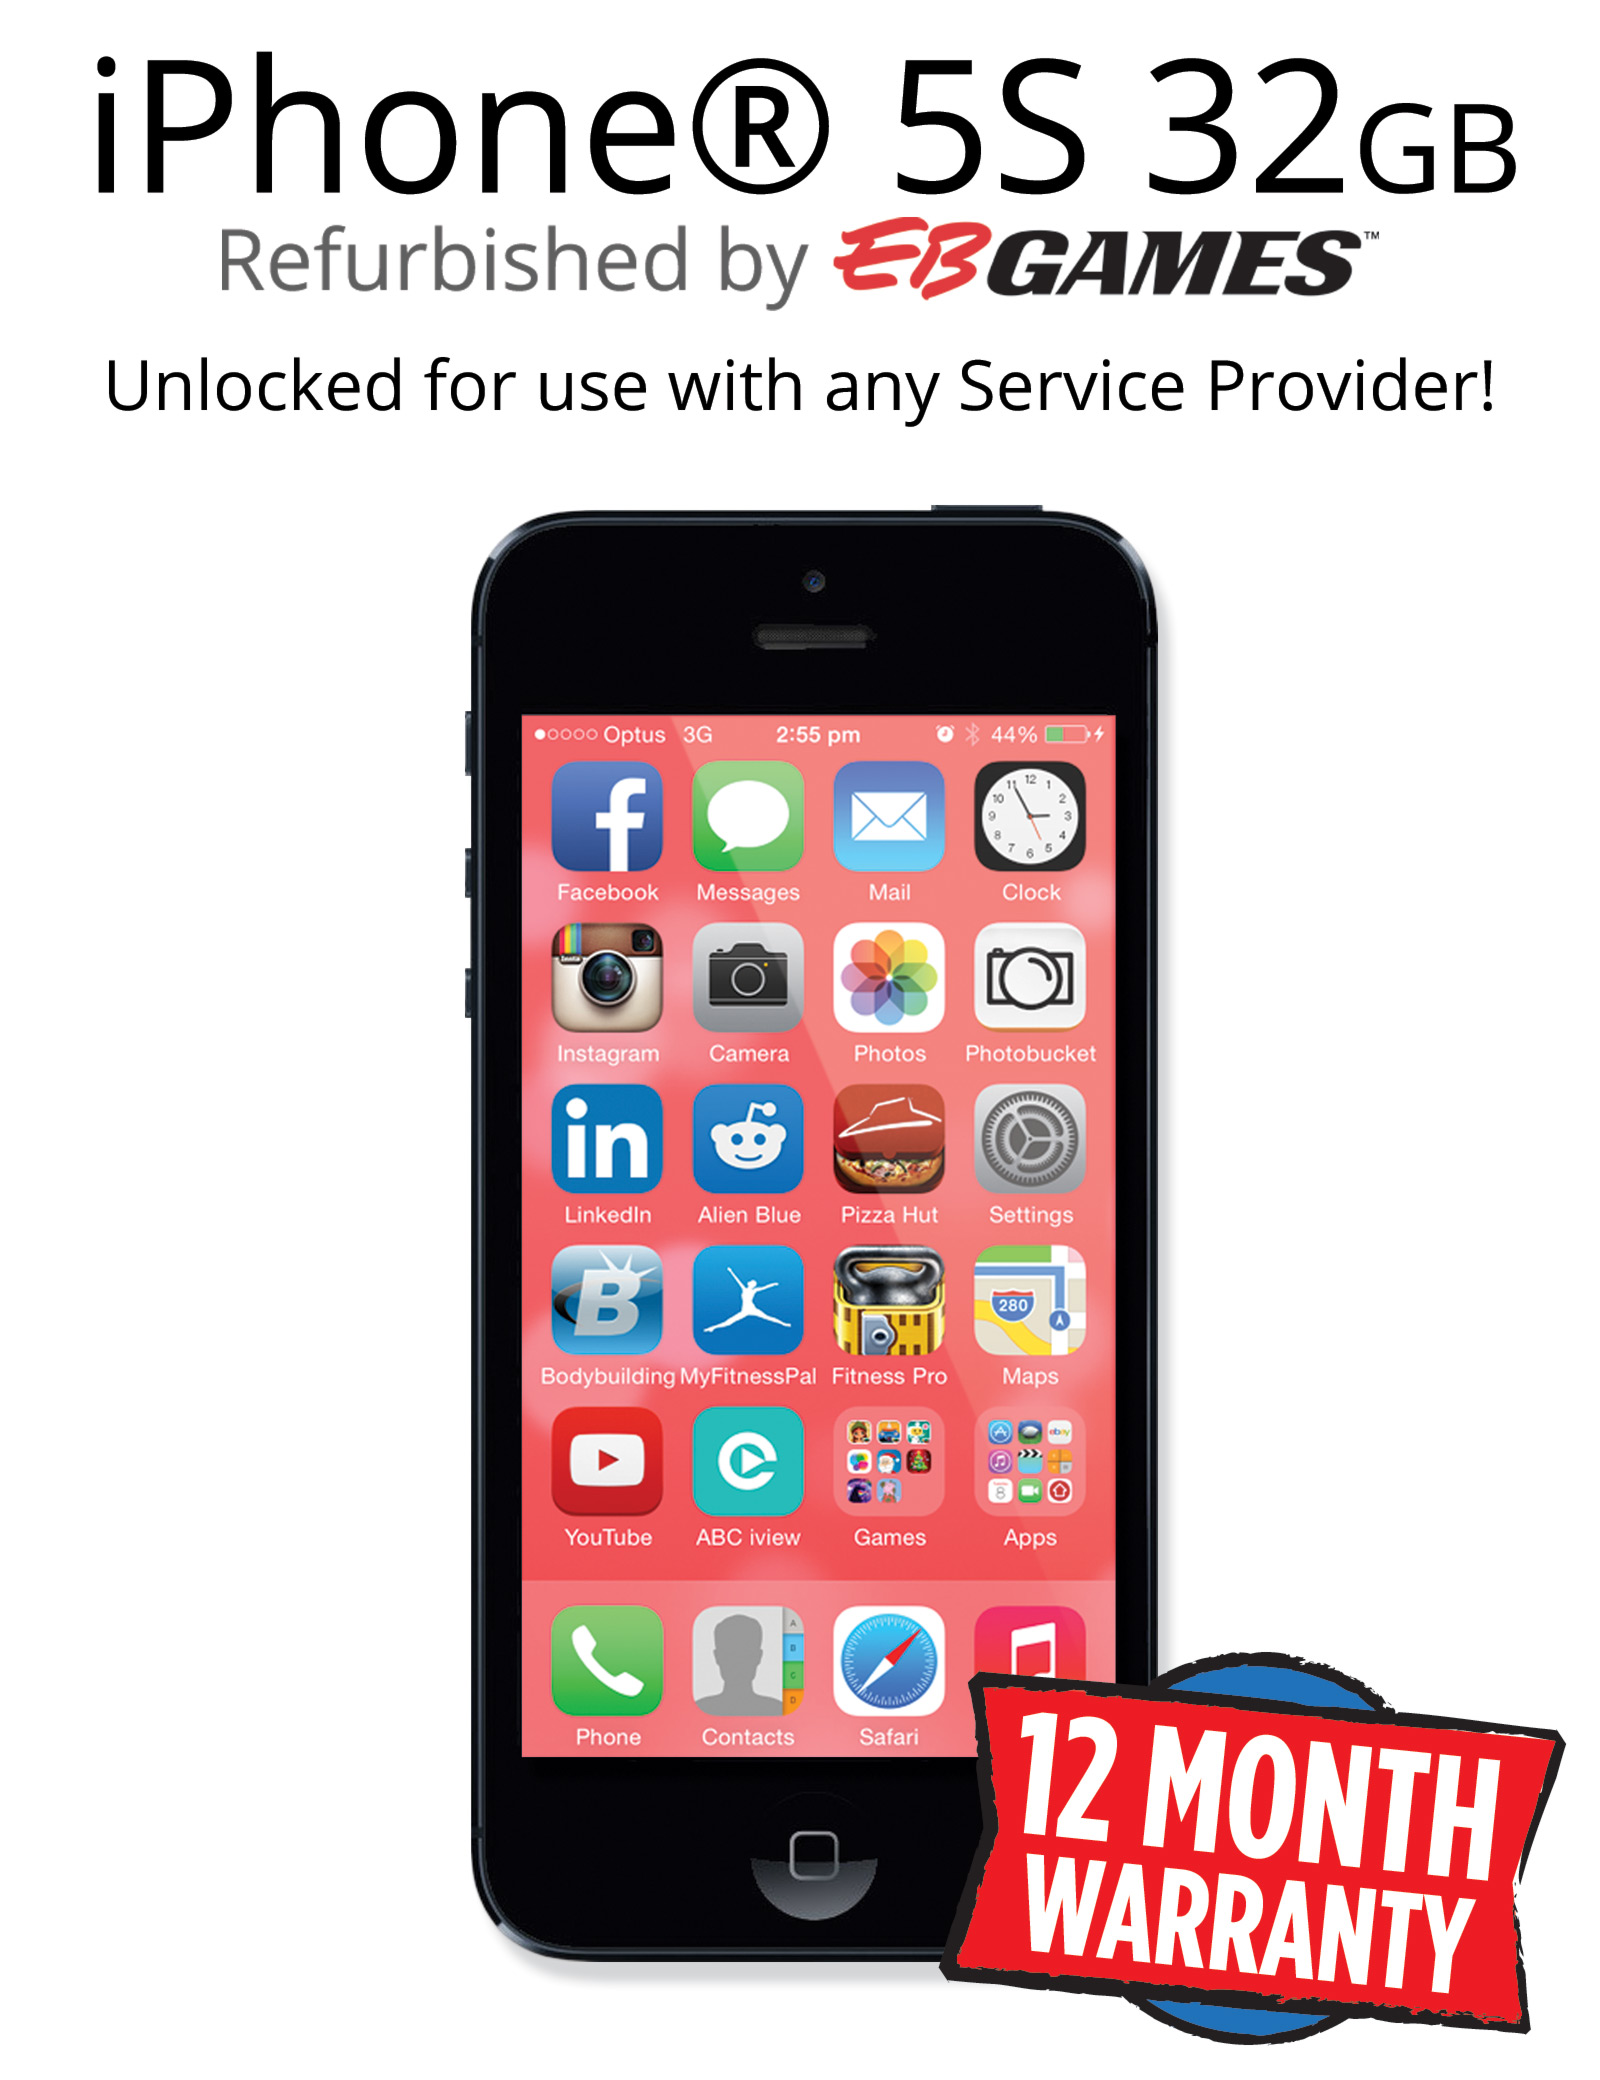 iphone 5s ebay unlocked iphone 5s 32gb unlocked black refurbished iphone ebay 3259